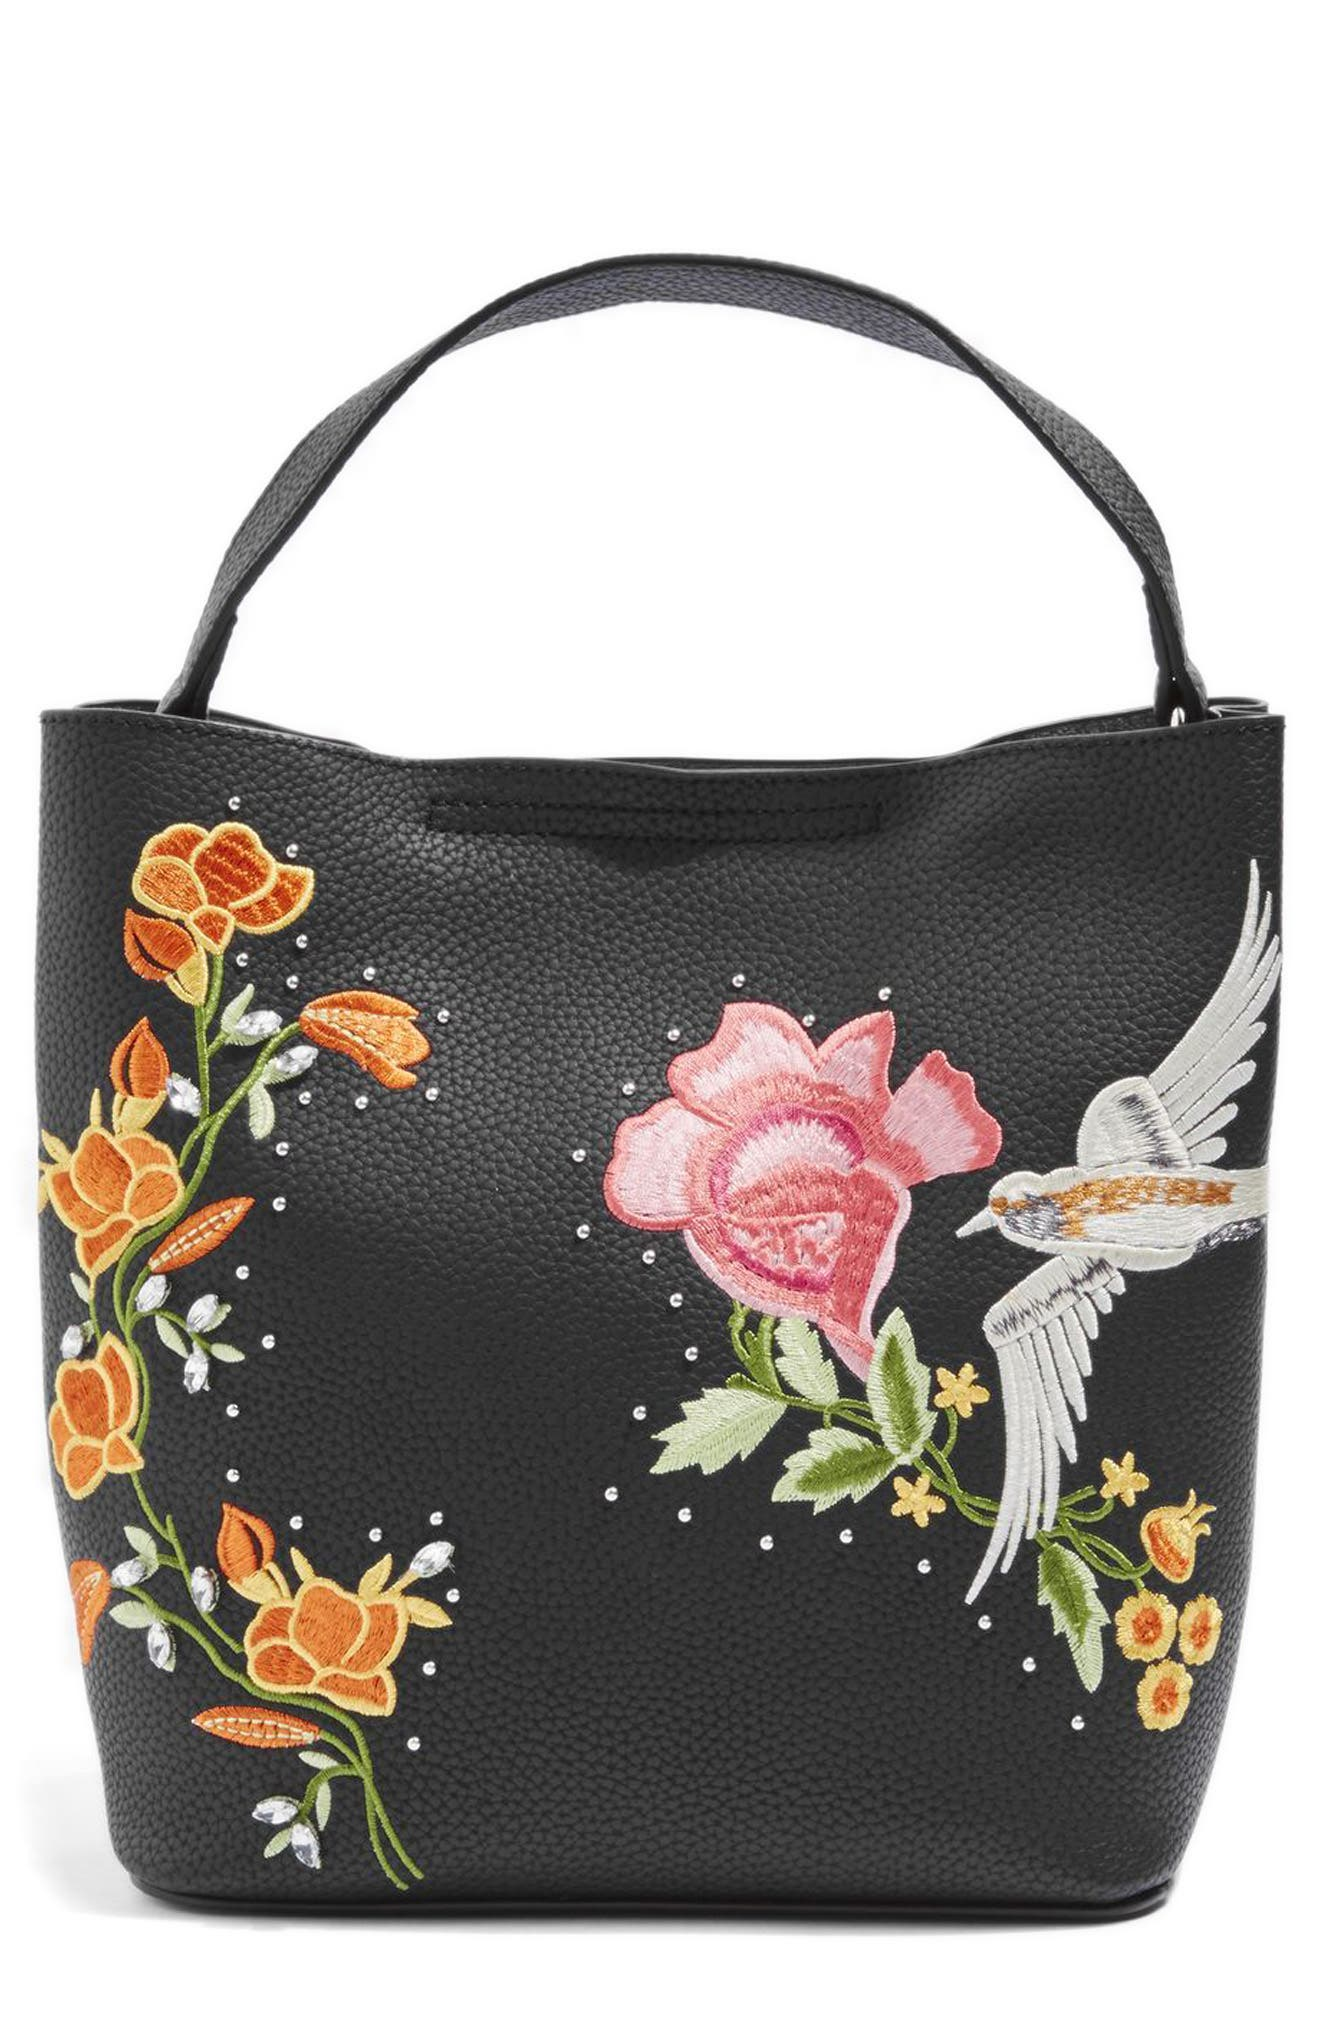 Main Image - Topshop Embellished Faux Leather Tote Bag